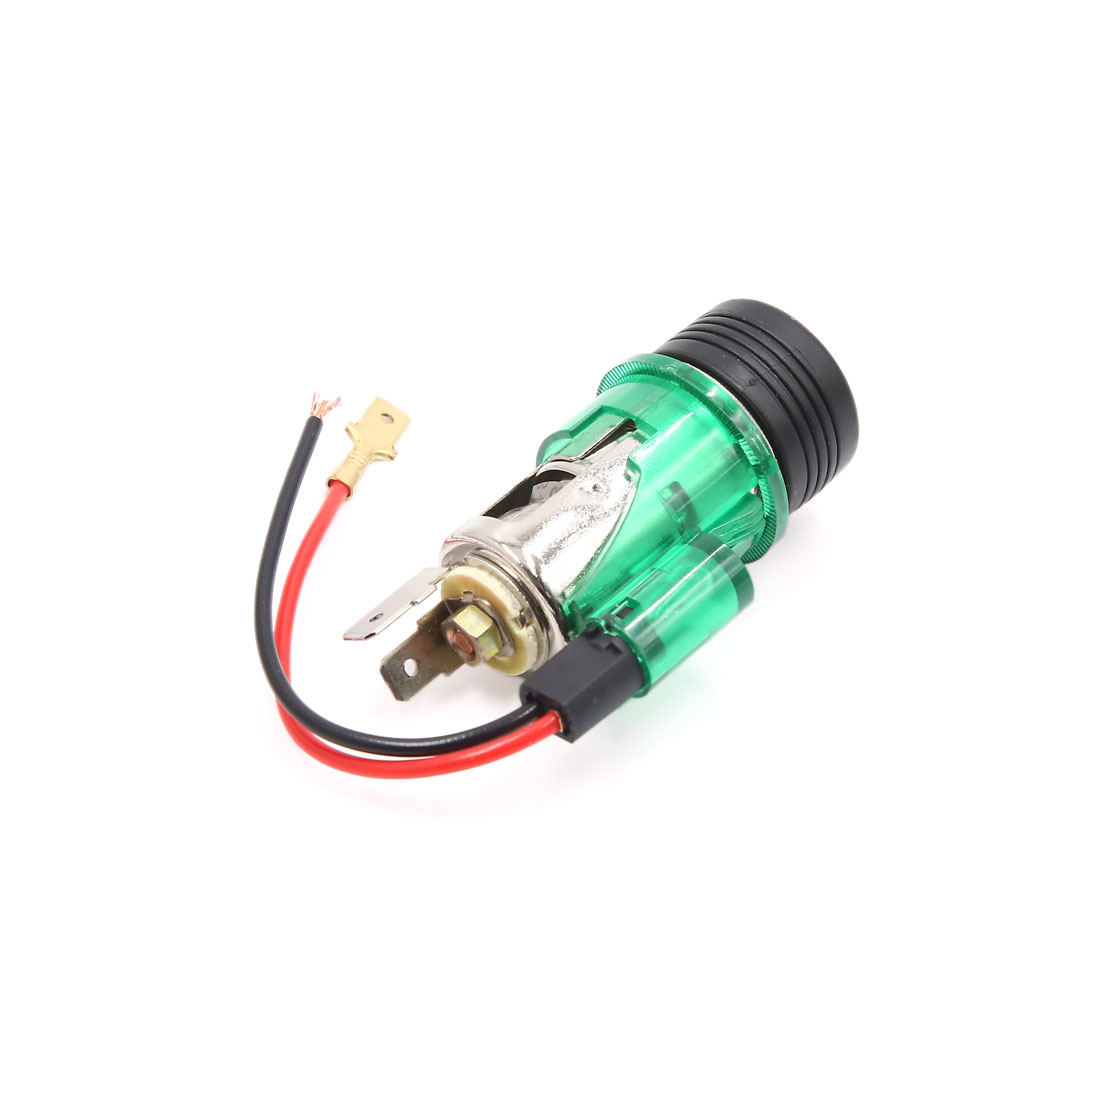 Dc 12v Auto Car Cigarette Lighter Socket With Led Charger Power Adapter Wiring On Plug